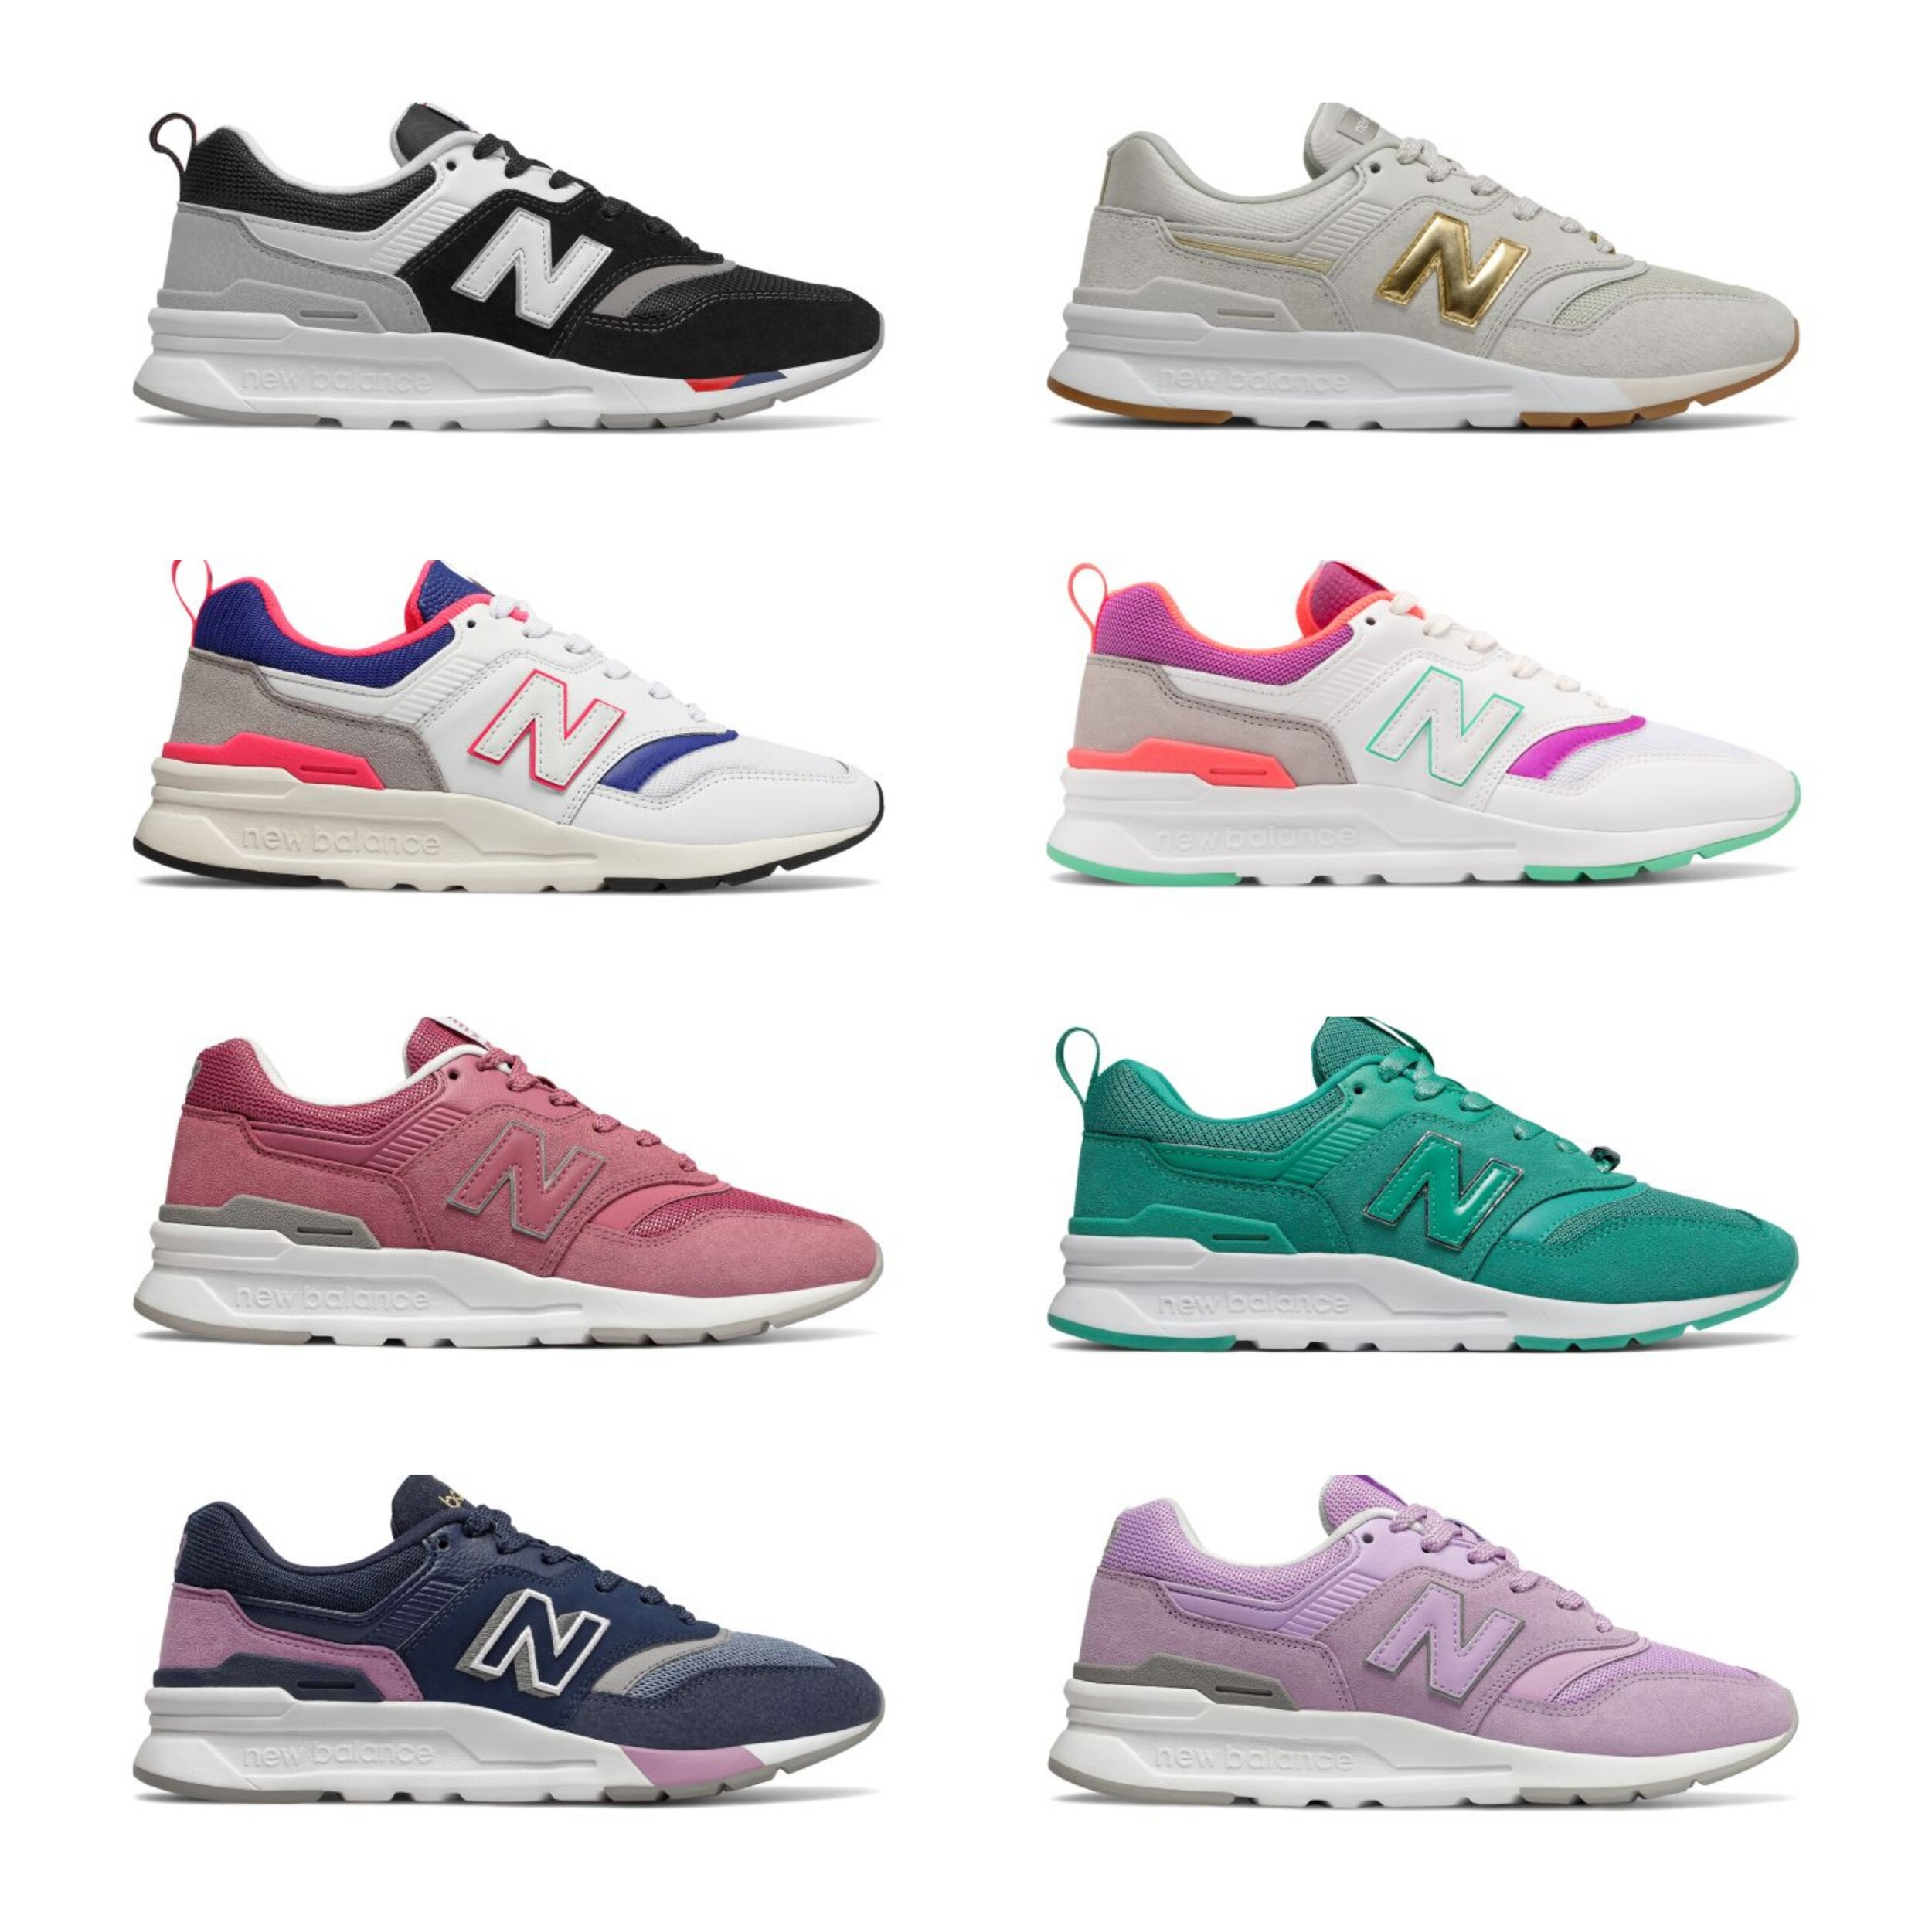 new balance 997h for sale